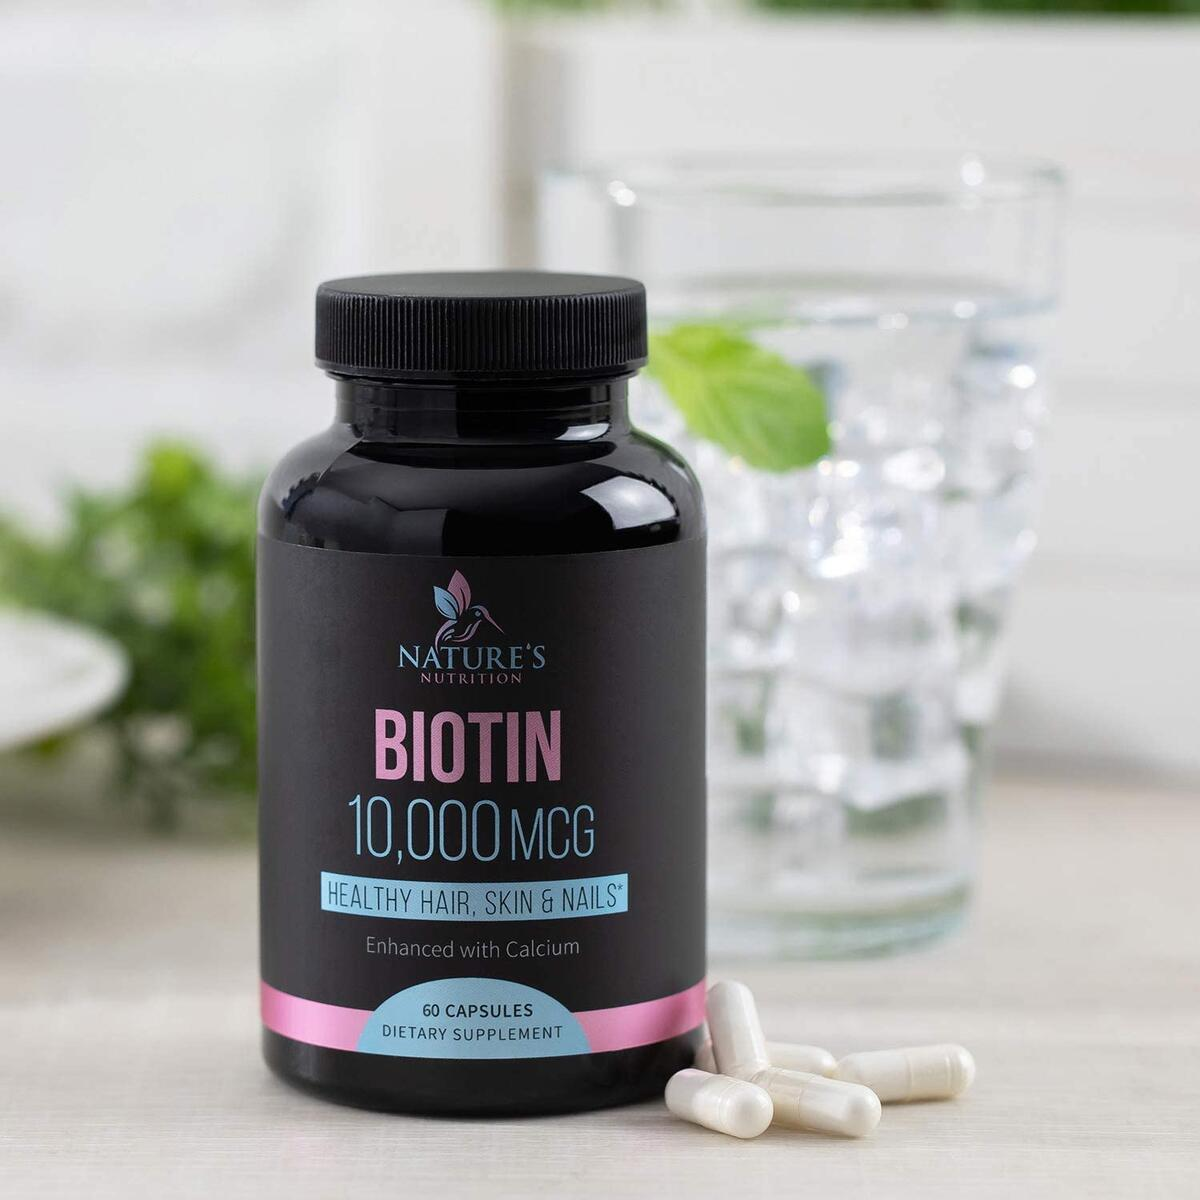 Biotin Supplement 10000mcg Highest Potency Vitamin B7 Pills - Made in USA - Supports Healthy Hair Growth, Hair Skin and Nails Vitamins for Women & Men - Gluten Free, Non-GMO - 60 Capsules